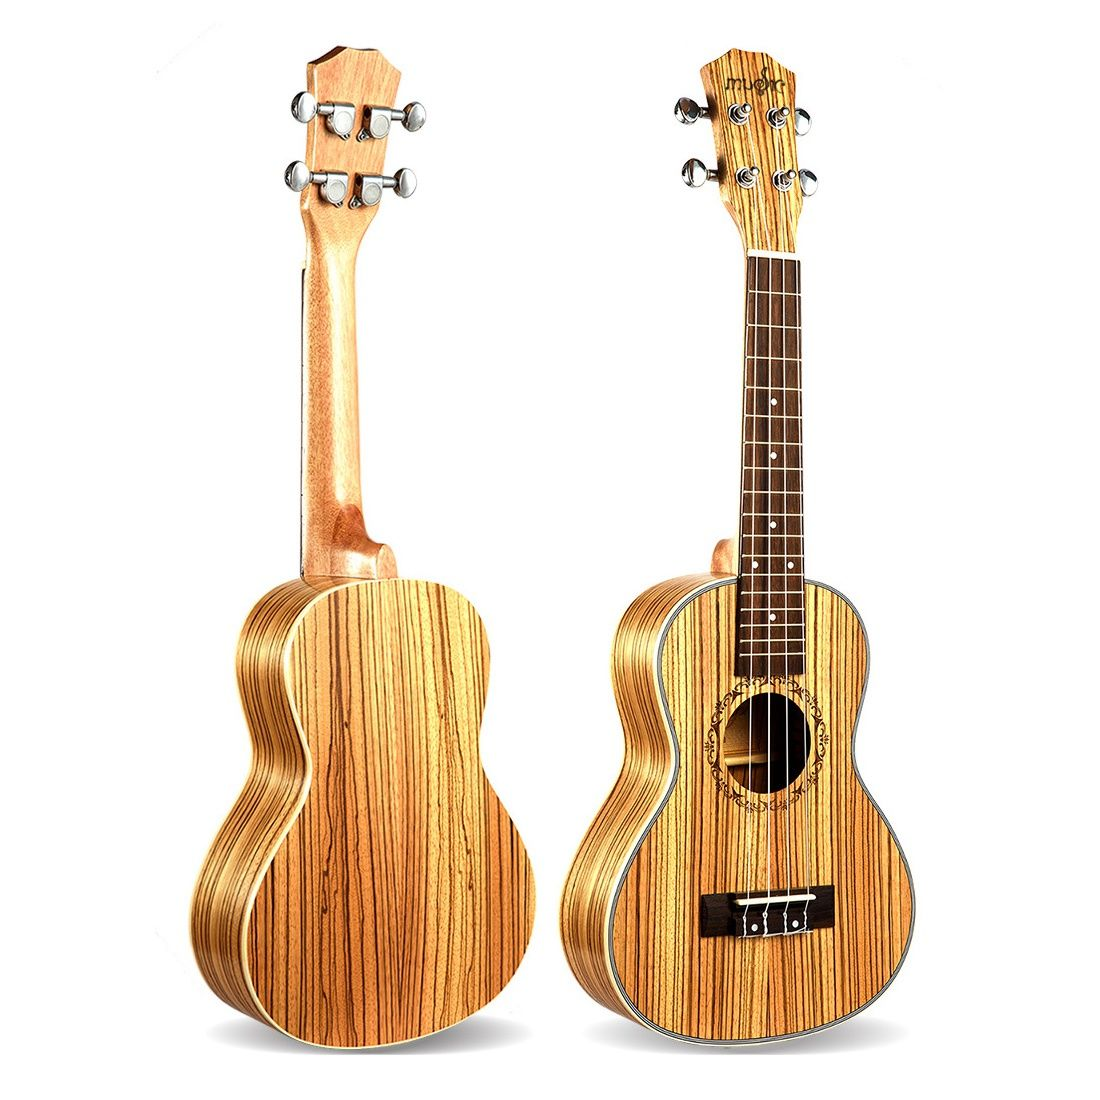 Concert Ukulele 23 Inch 4 Strings Hawaiian Mini Guitar Acoustic Guitar Ukelele guitarra send gifts Music al Stringed Instrument dedo music gifts mg 308 pure handmade rotating guitar music box blue